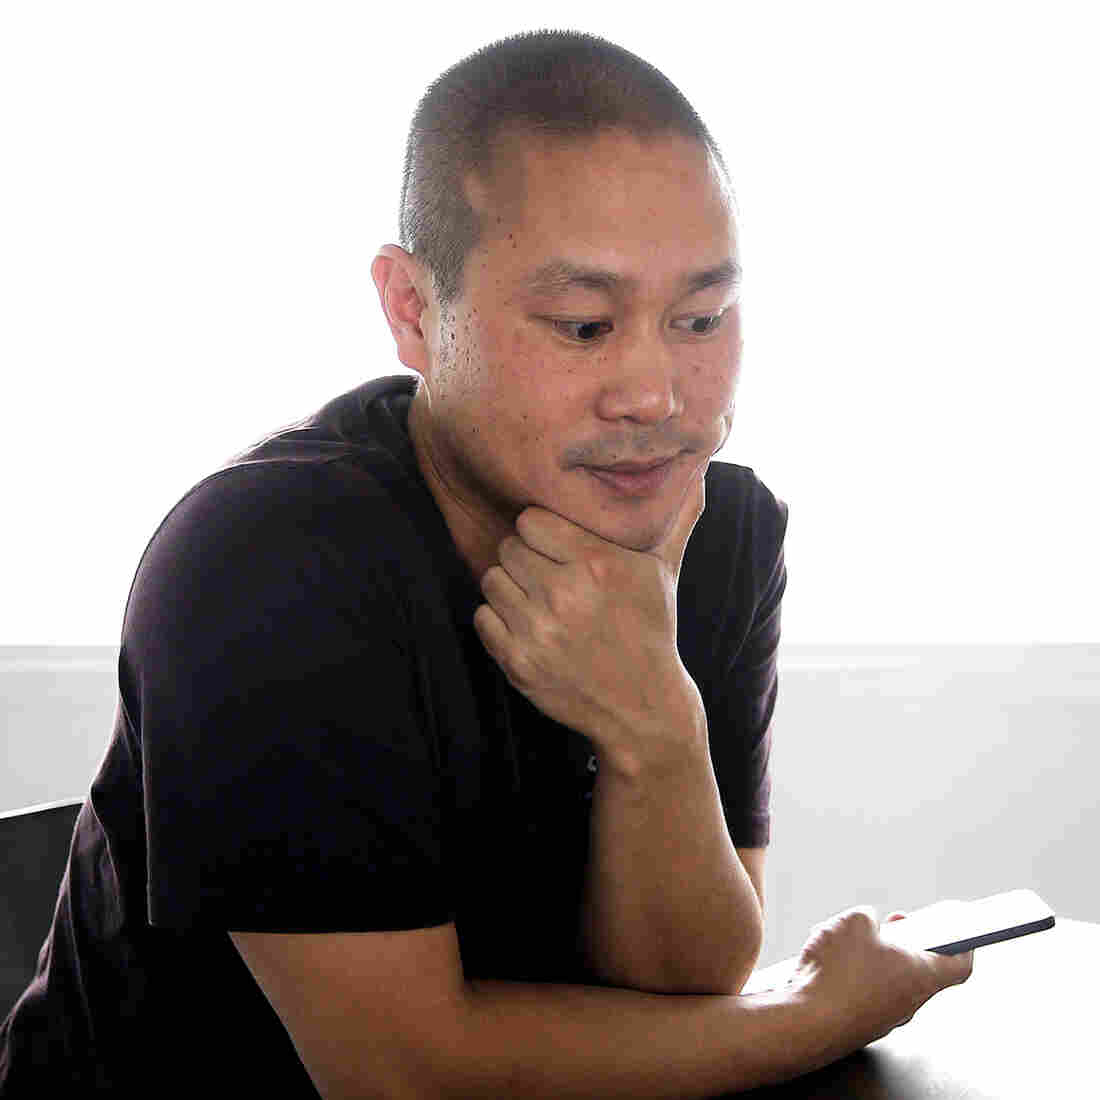 Zappos.com CEO Tony Hsieh is spearheading an effort to revitalize downtown Las Vegas and make it a tech hub, home for small businesses and a creative community.